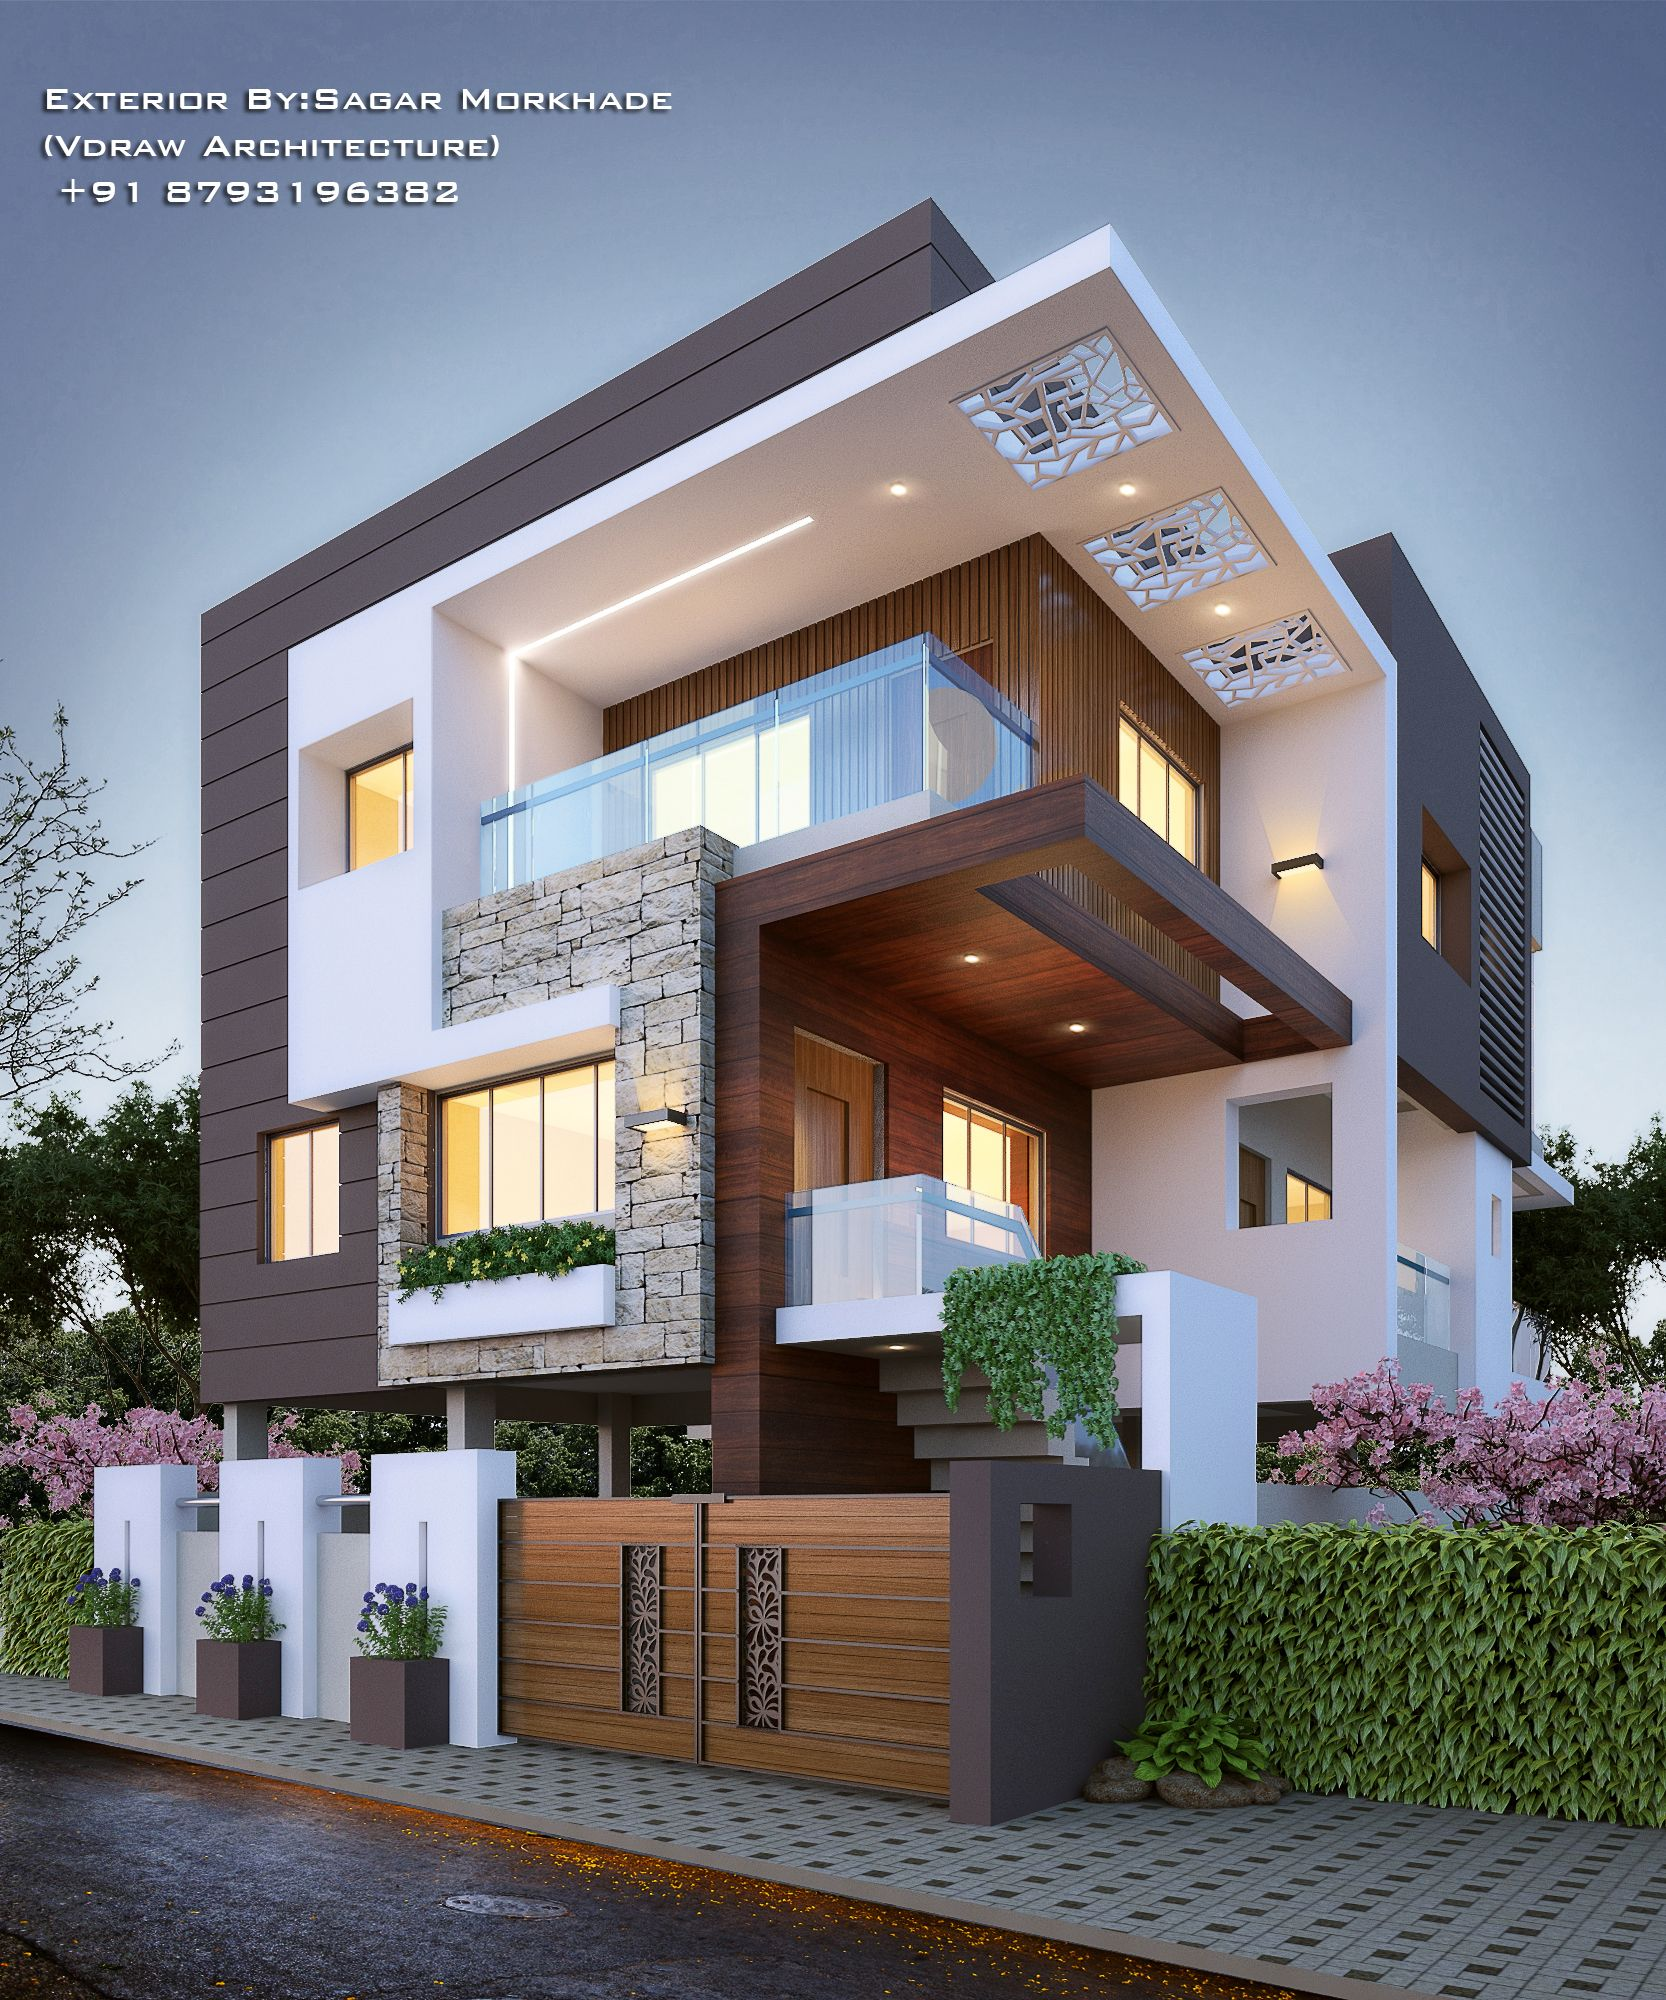 Architectural Design Of Residential Building Modern Residential Exterior By Sagar Morkhade Vdraw